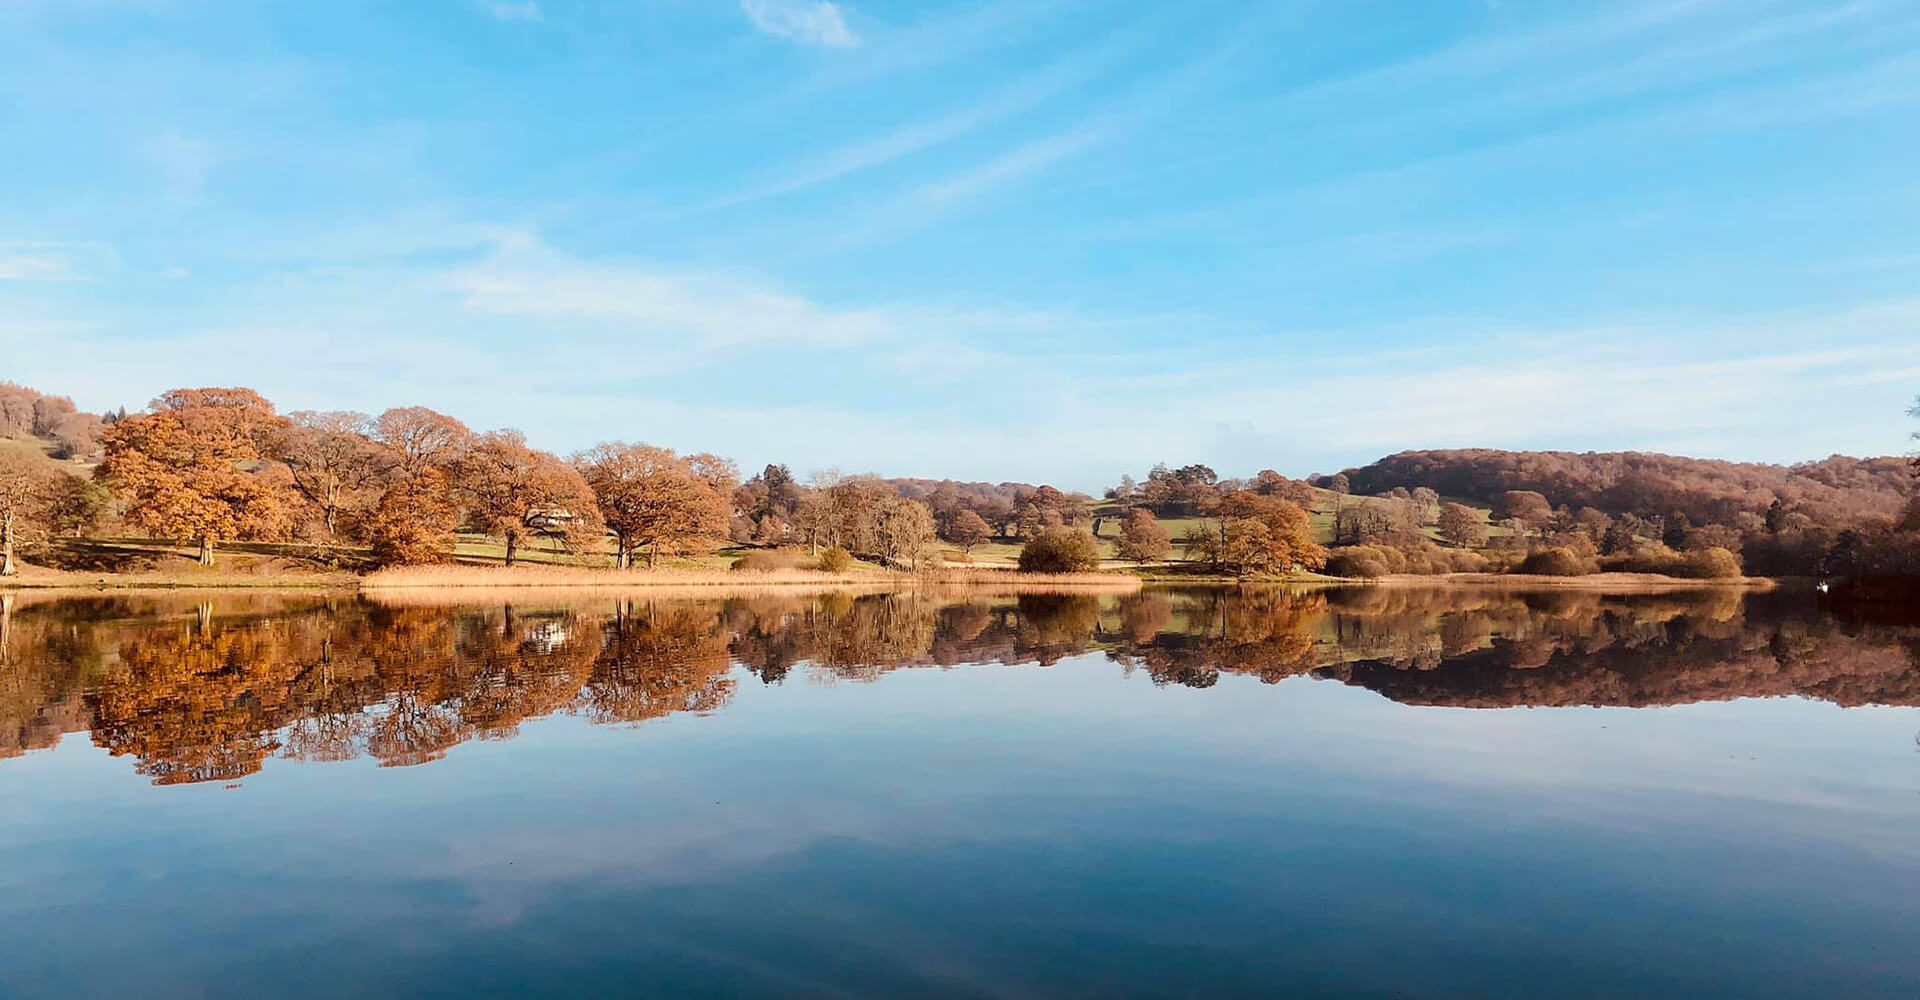 Esthwaite Water is a beautiful natural 280-acre private water situated in the heart of the English Lake District with excellent facilities for boat or bank fishing.